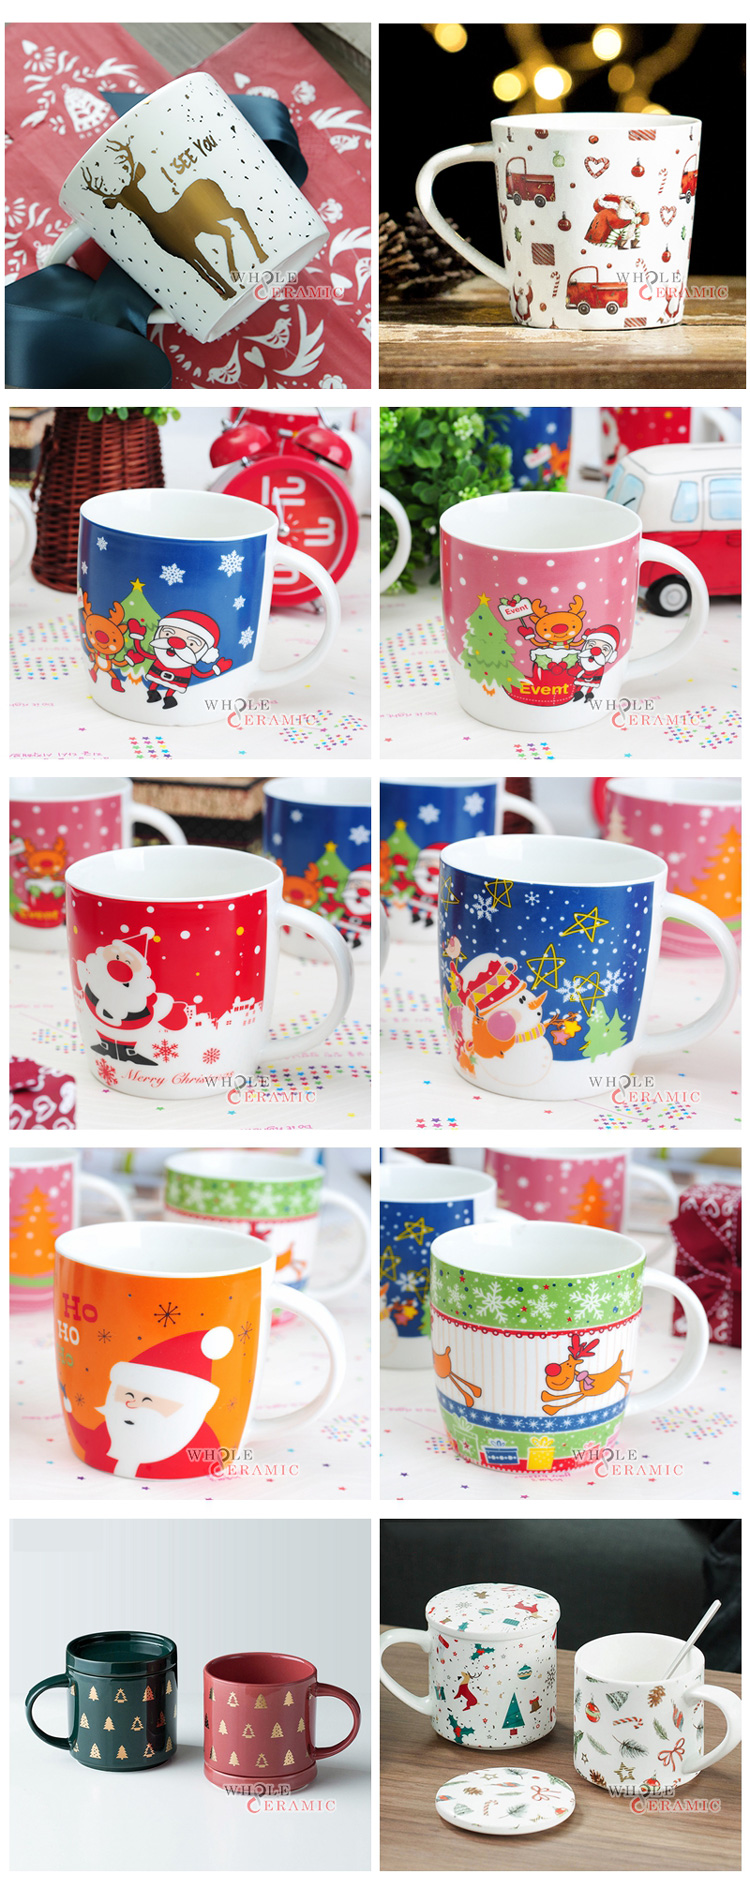 Customized Ceramic Christmas Coffee Cup Mug With Box, Santa Mug For Christmas Market With Gold Decoration